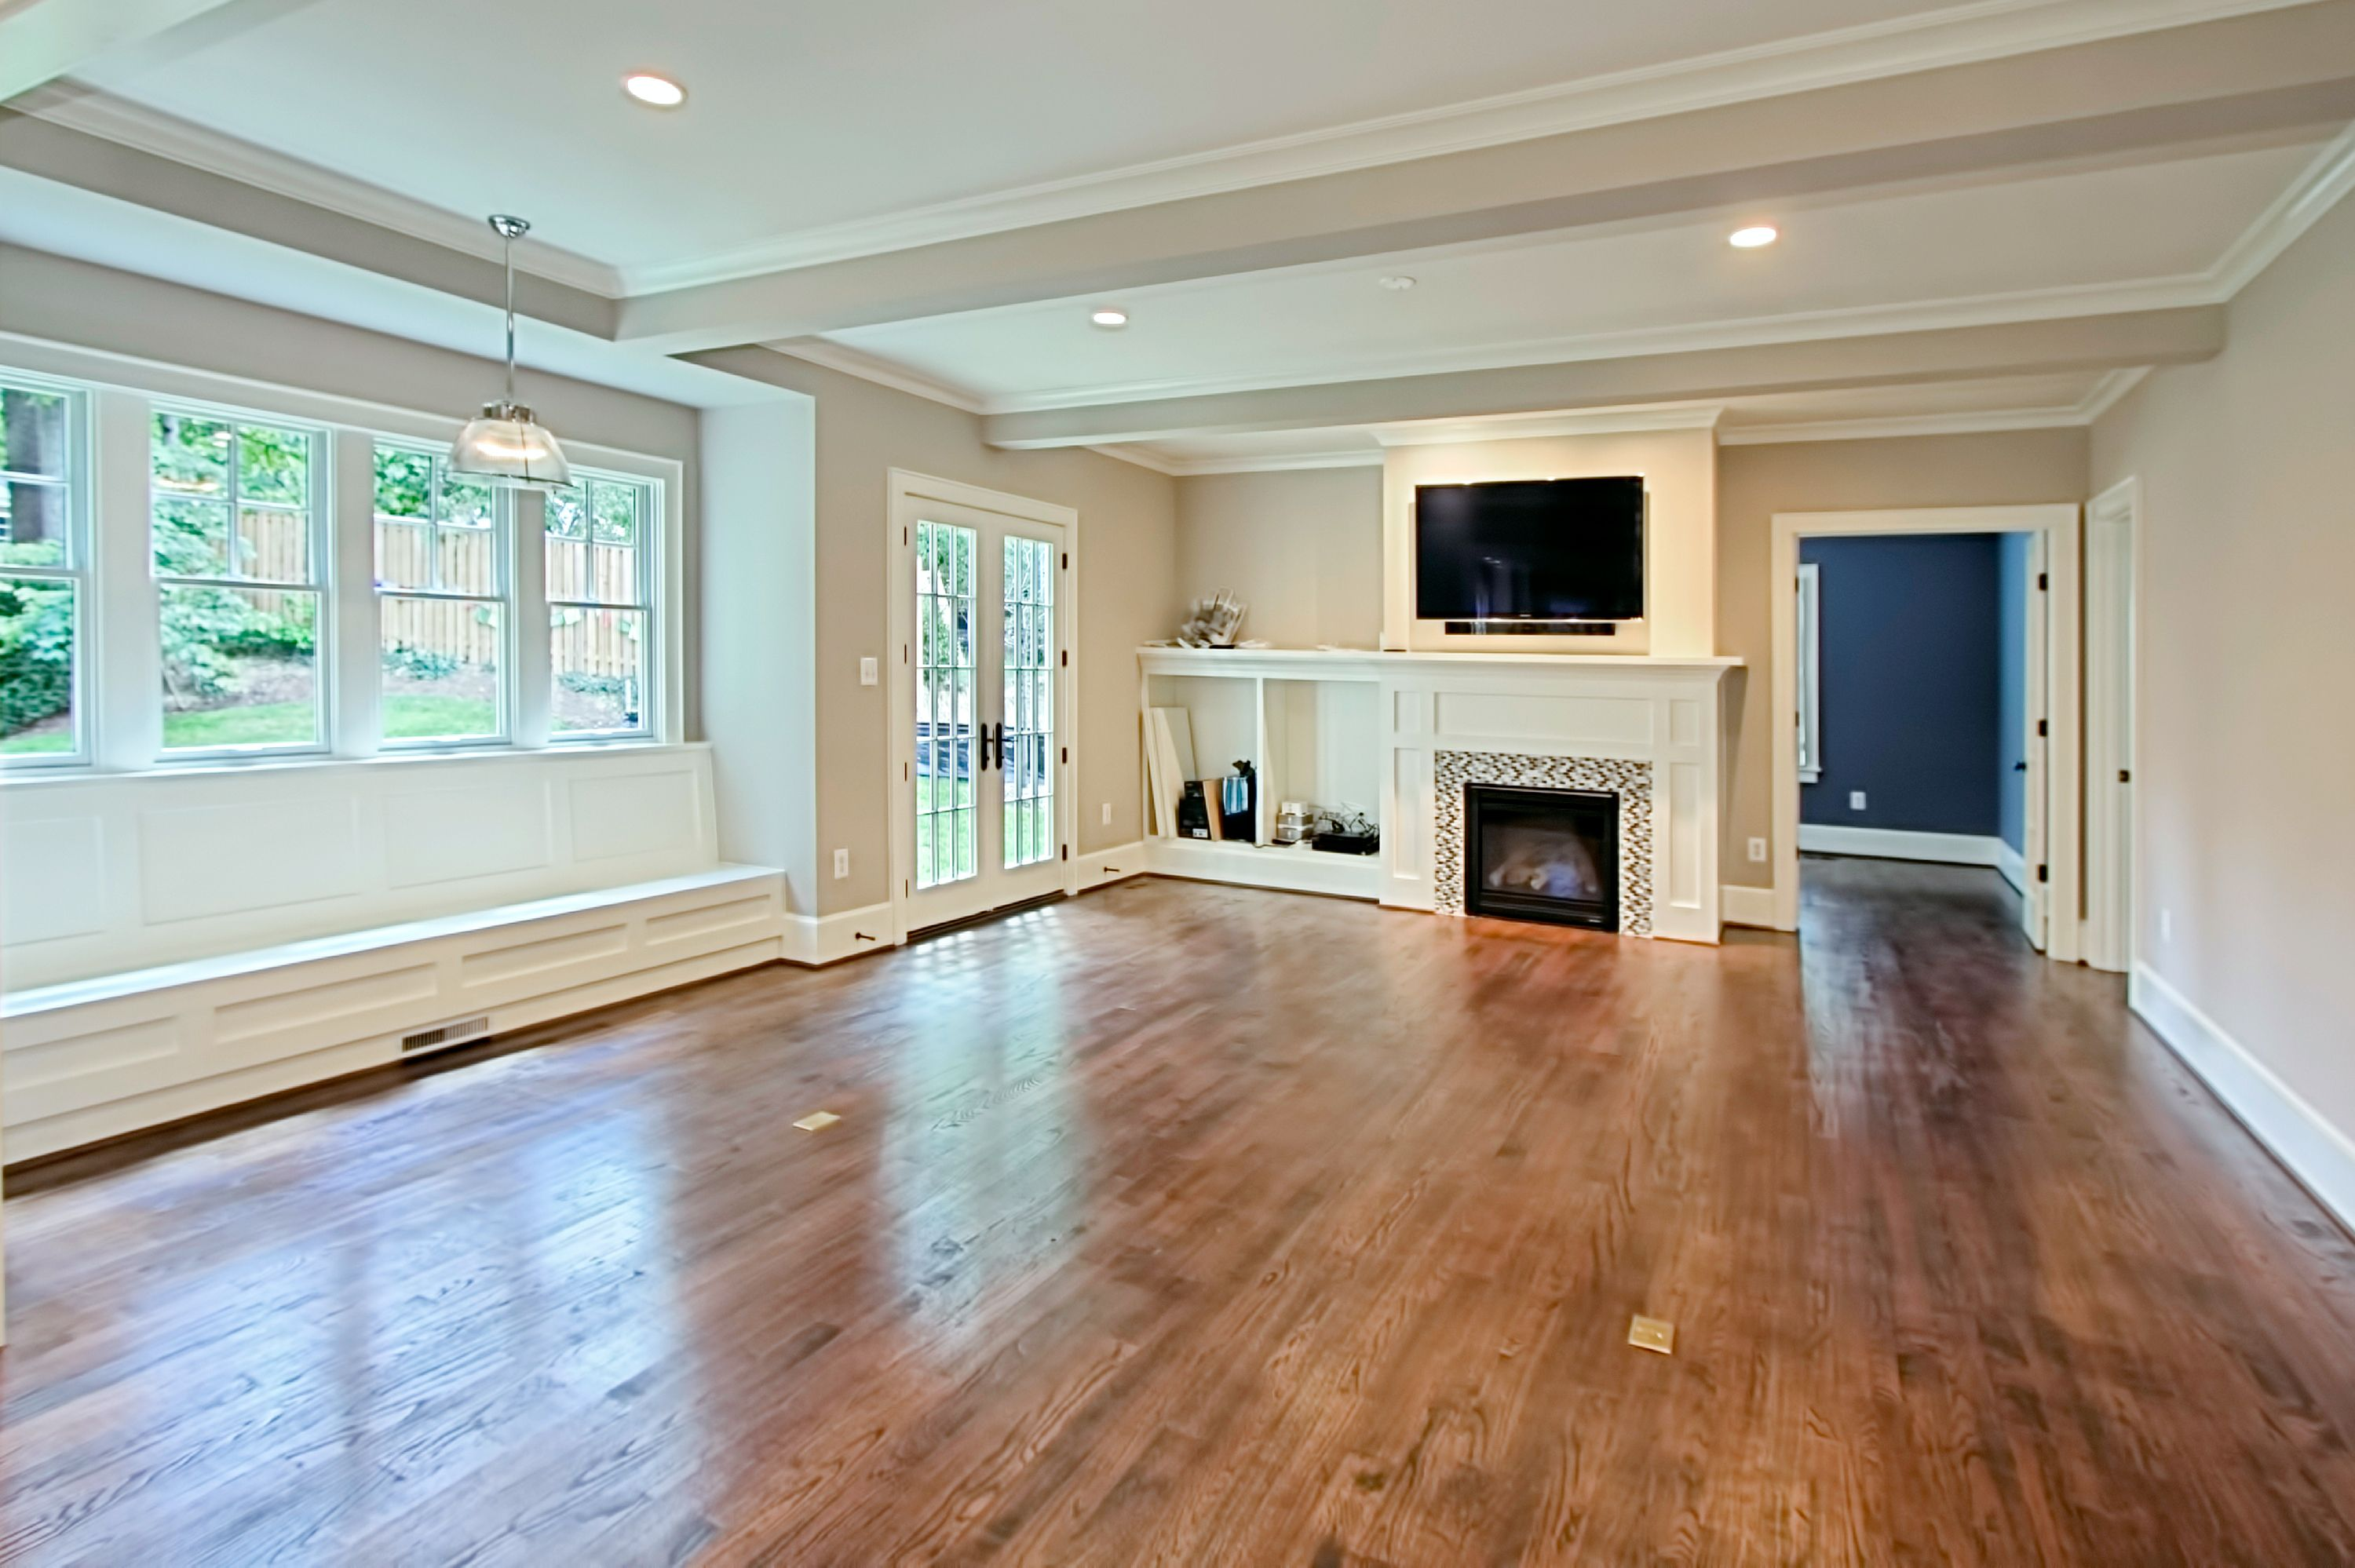 Family room with built-in fireplace